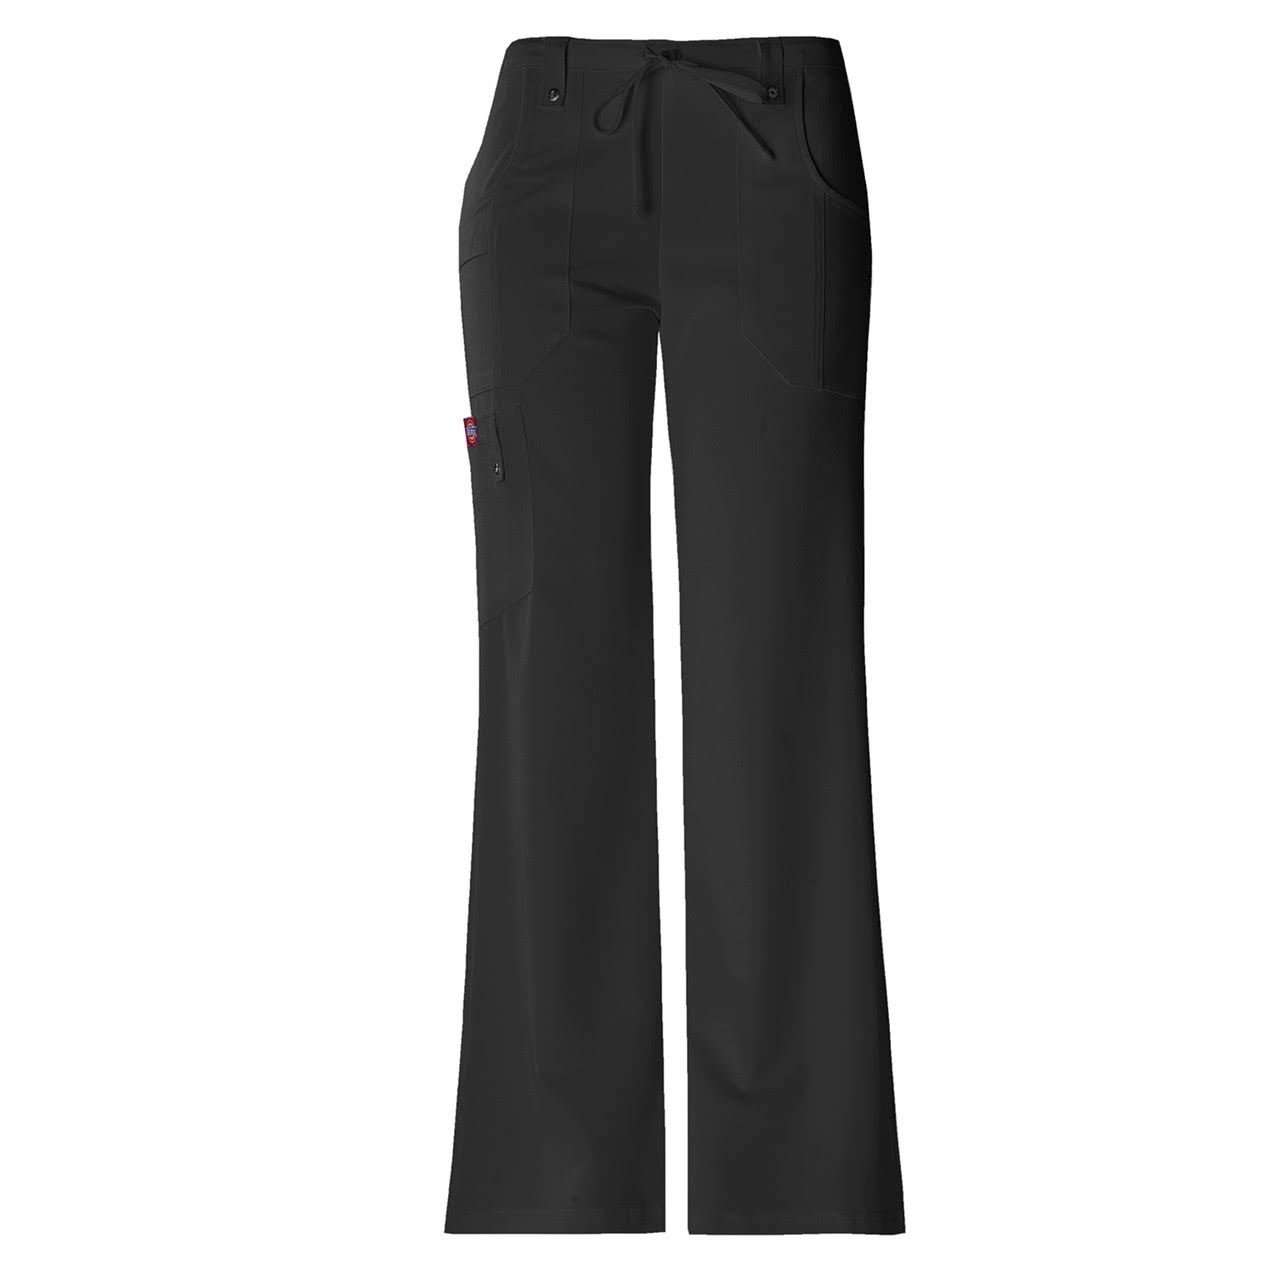 Dickies Women's Xtreme Stretch Fit Drawstring Flare Leg Pants - Black, 2X-Large